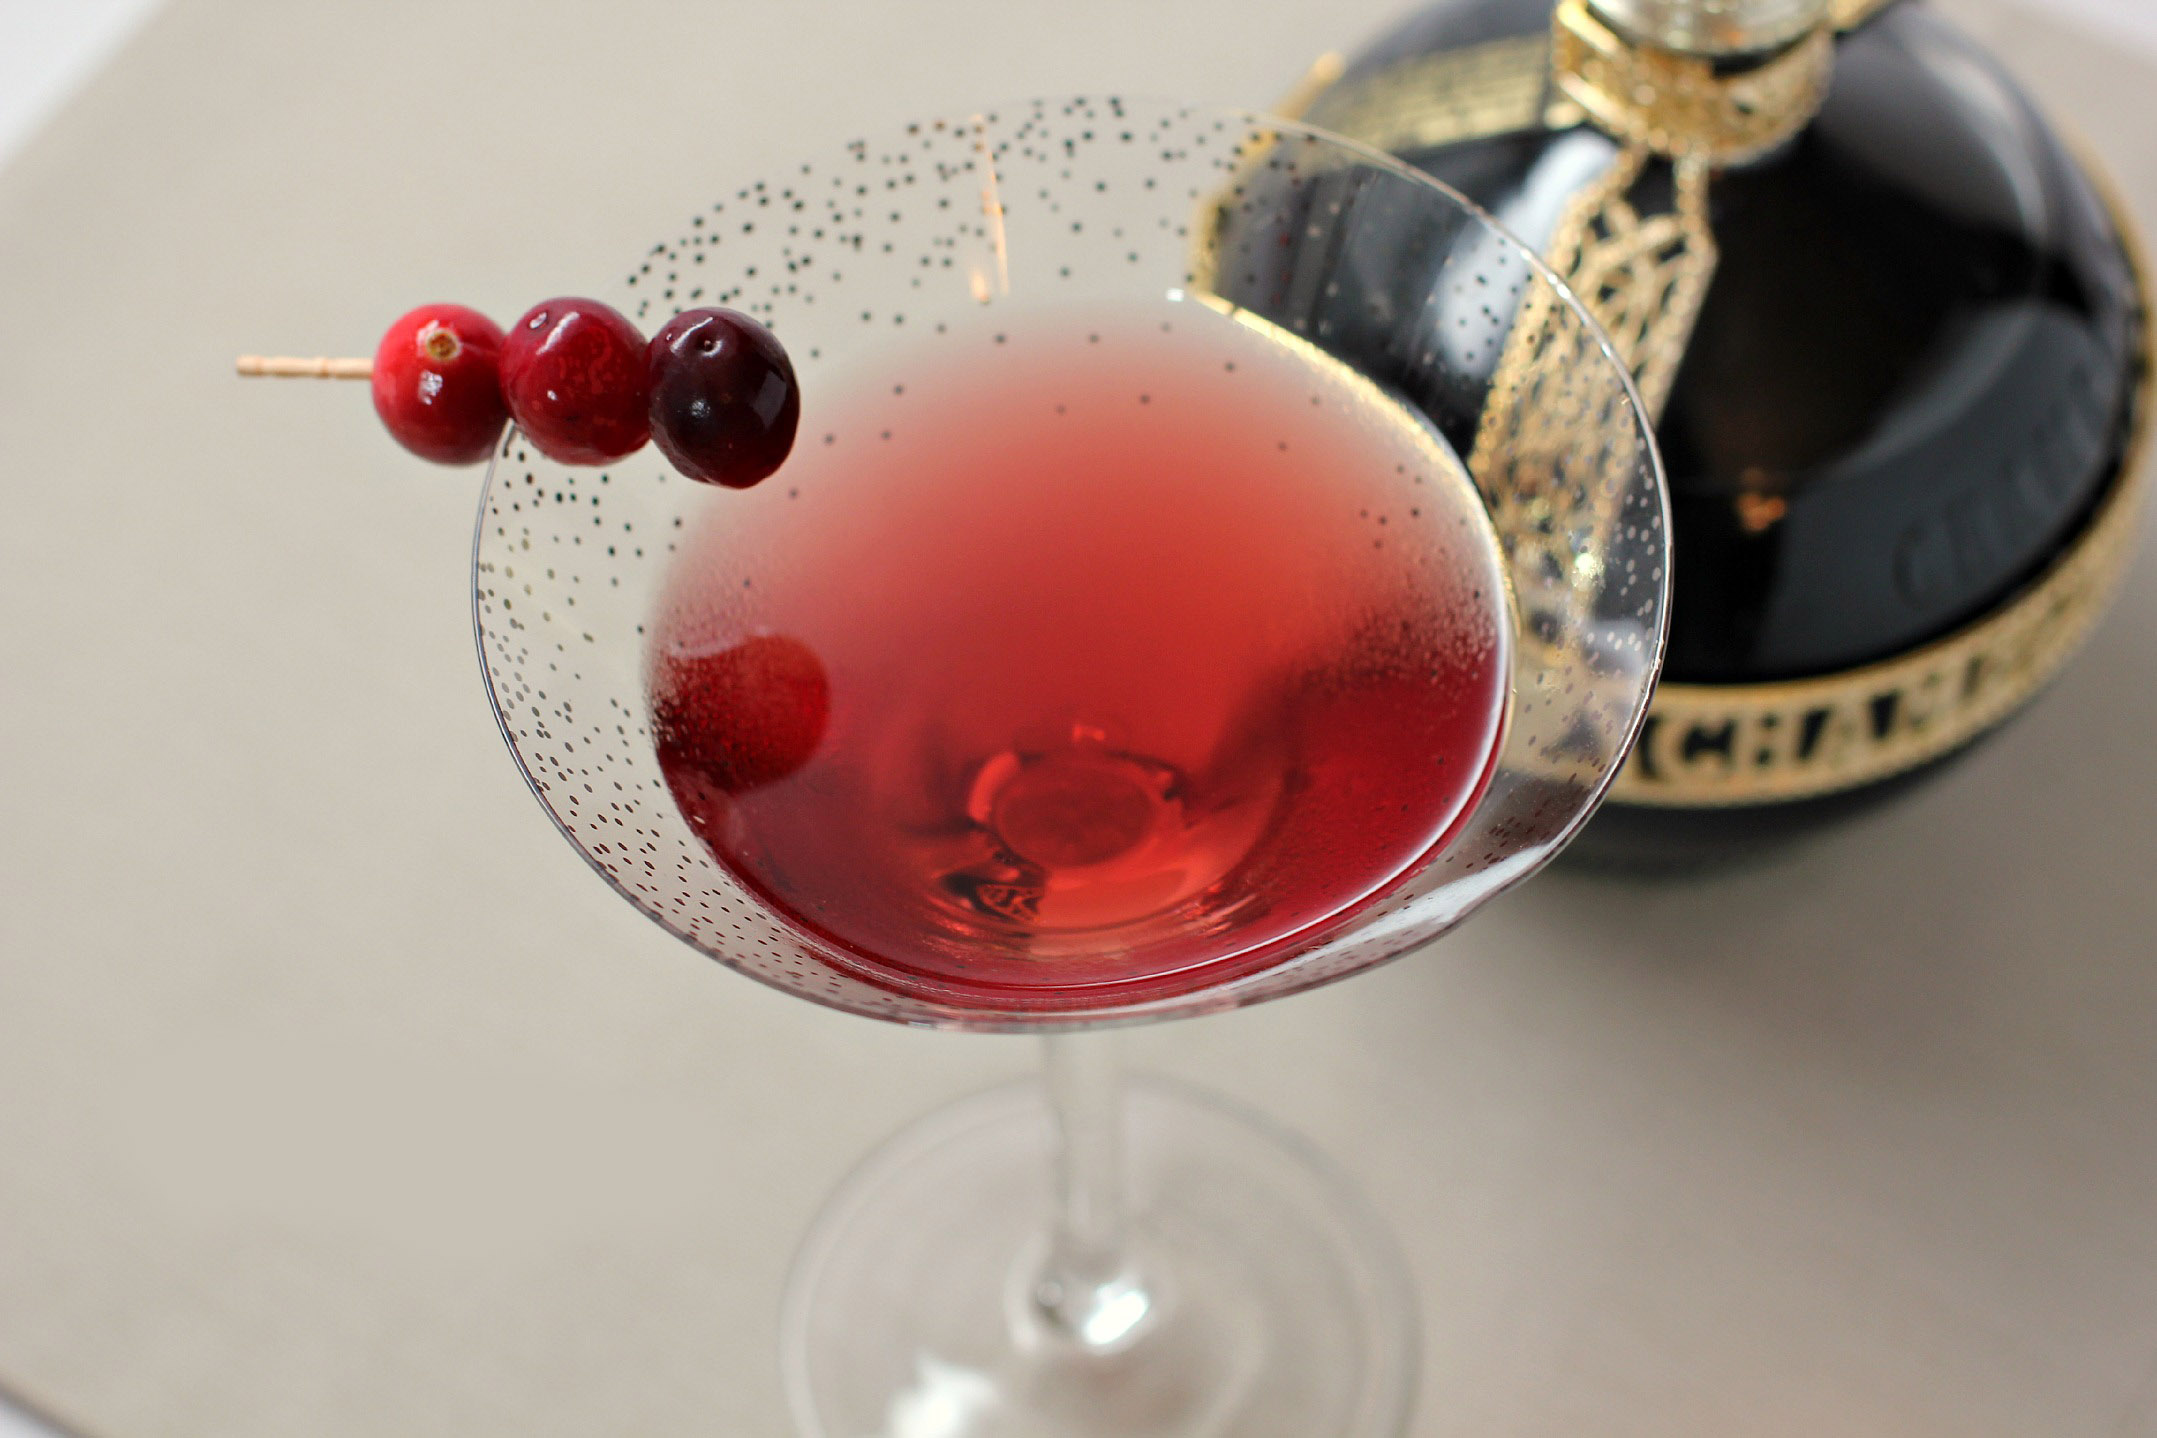 Cran-raspberry martini